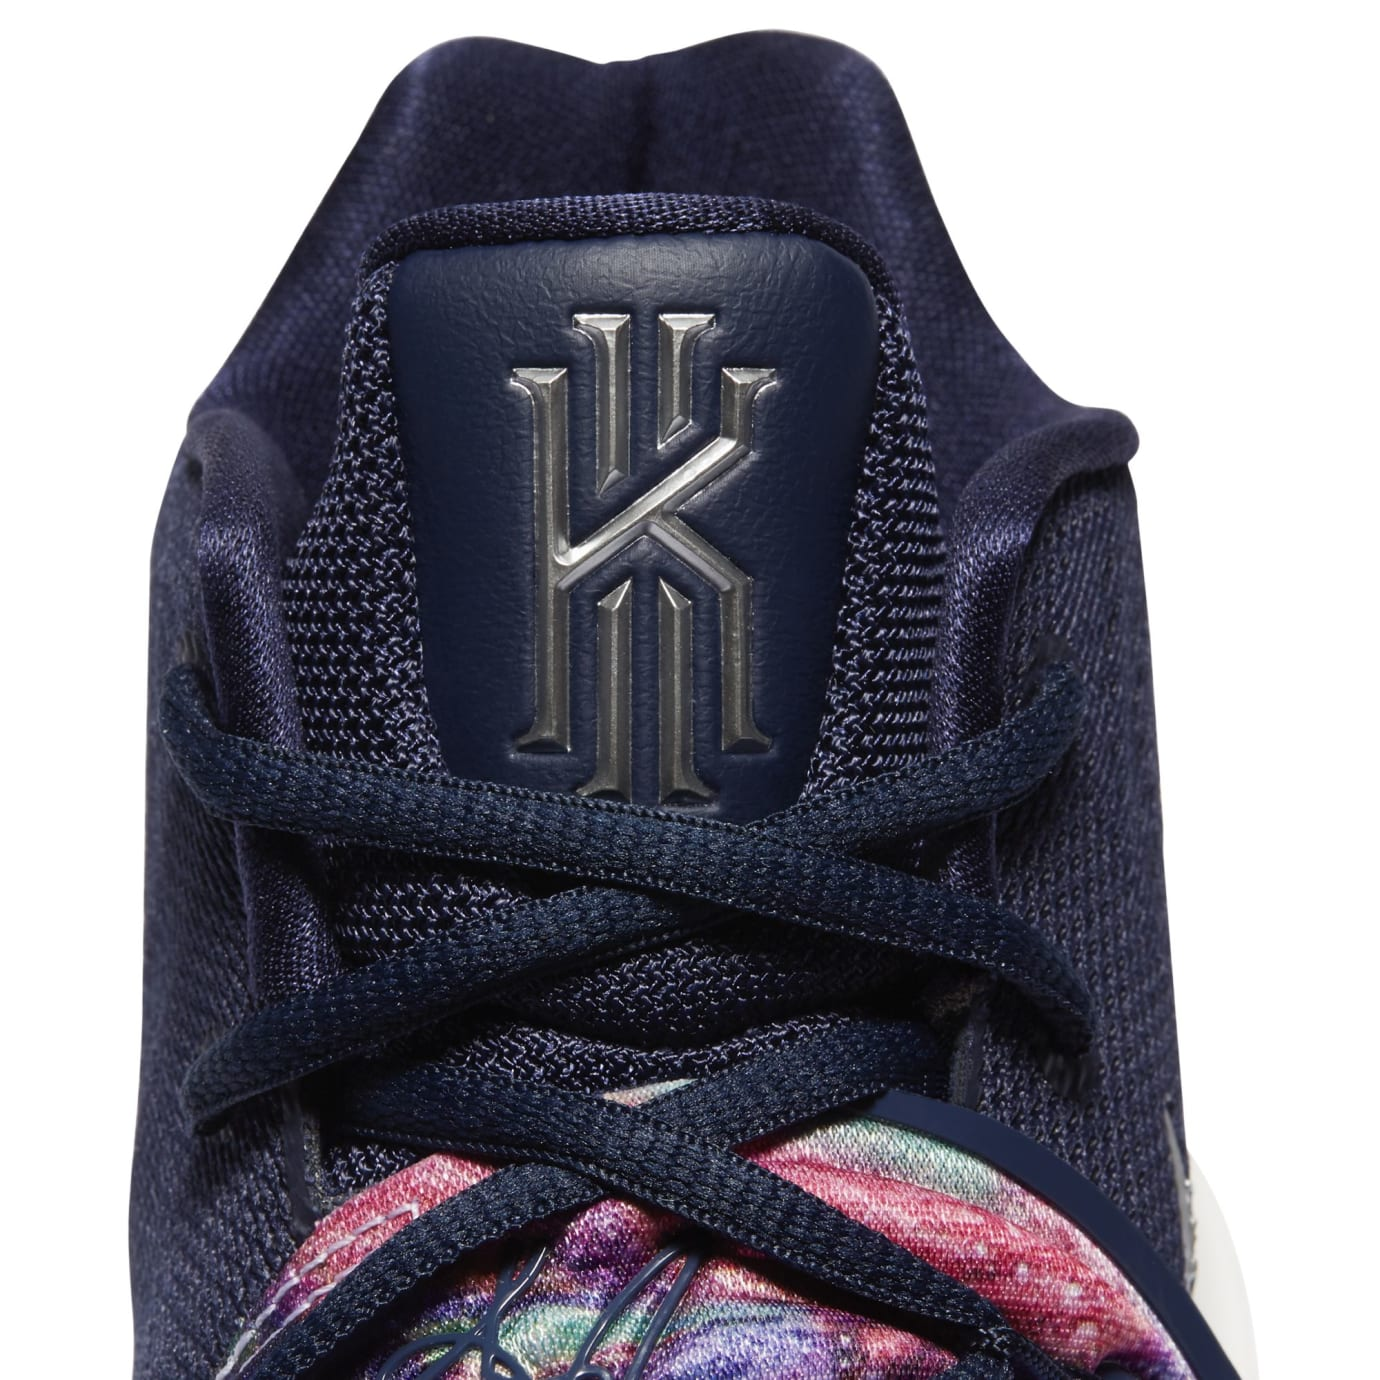 Nike Kyrie 5 'Multi-Color' (Tongue)